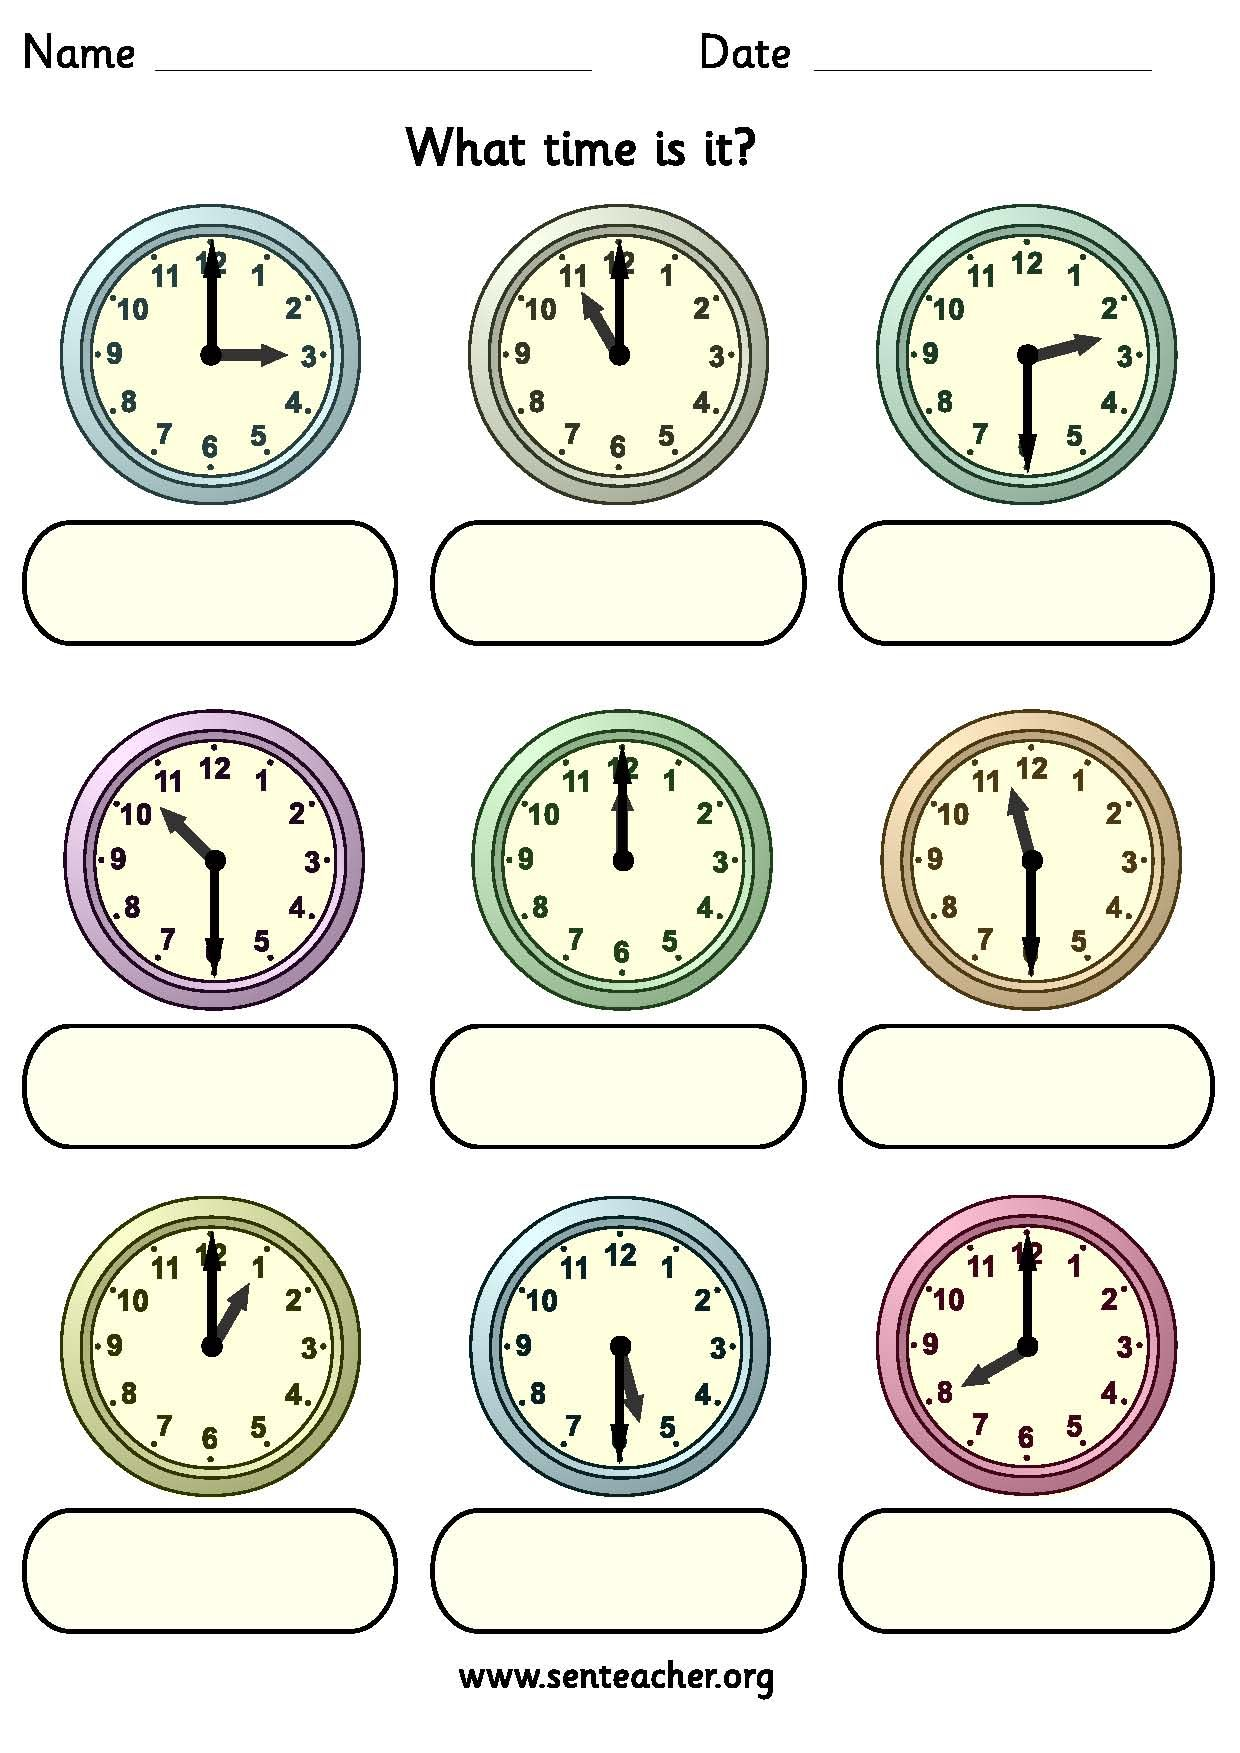 worksheet containing 9 analogue clocks showing o 39 clock or half past times with space to write in. Black Bedroom Furniture Sets. Home Design Ideas